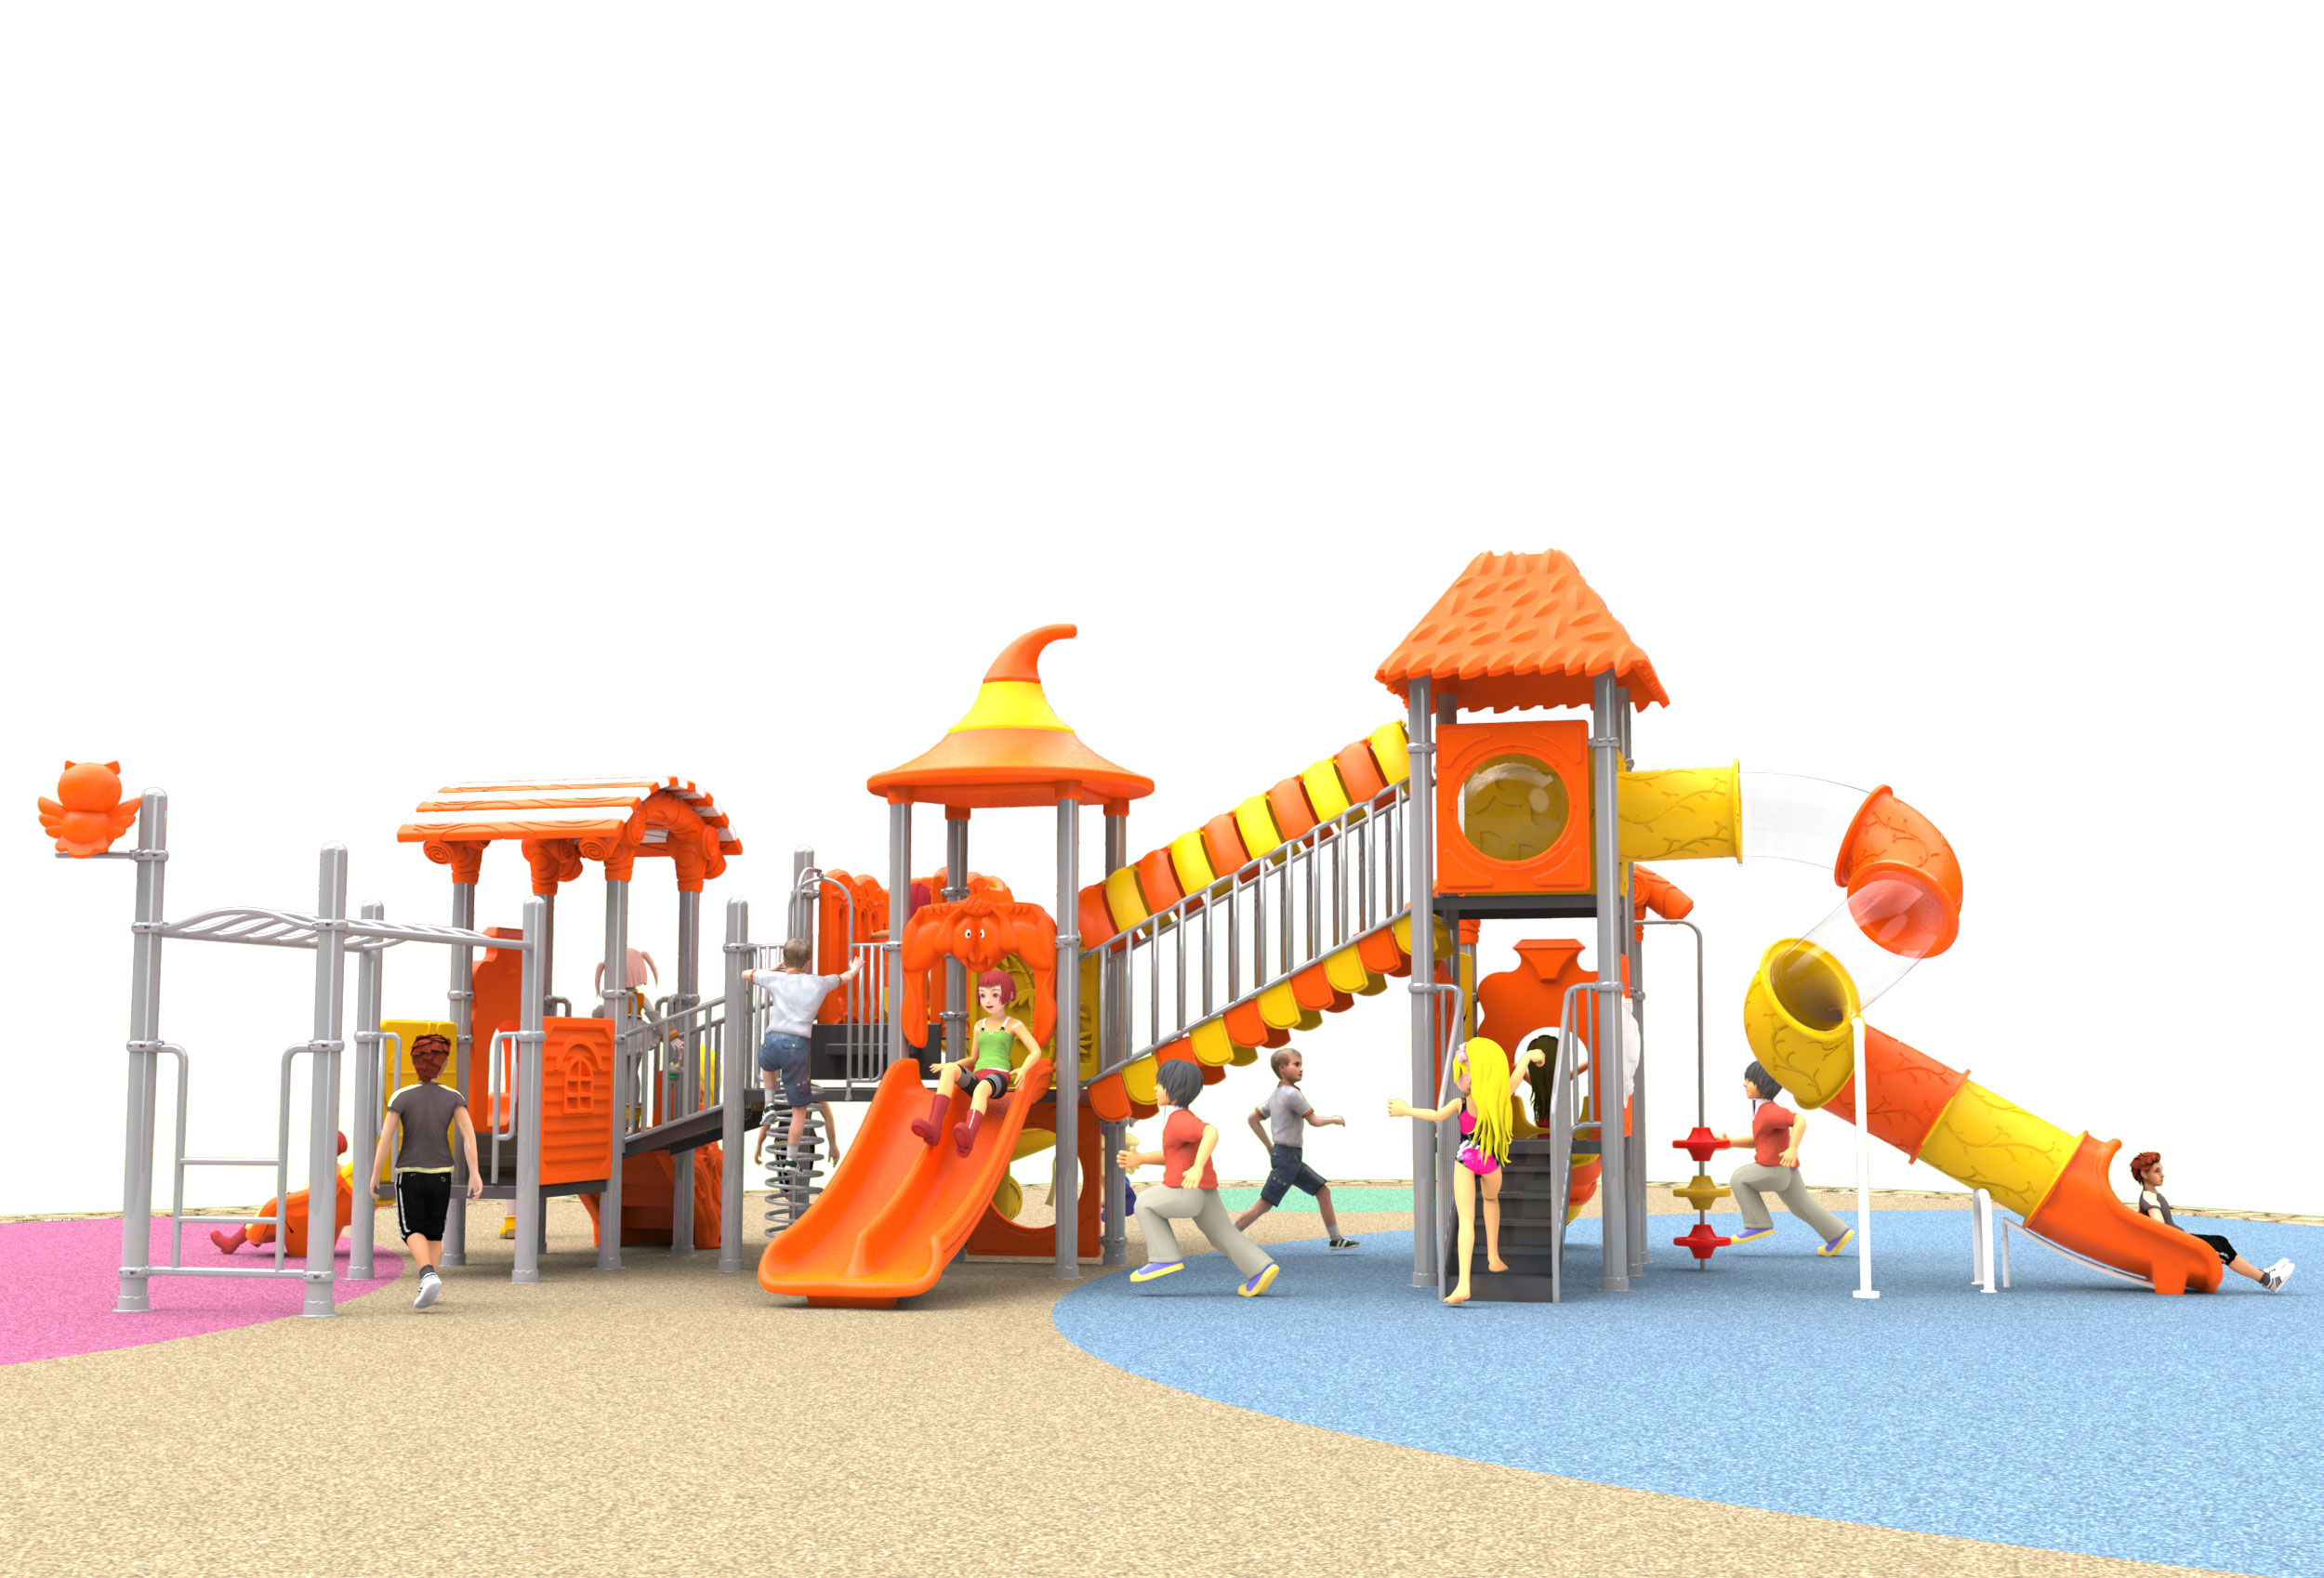 Dream&Garden  will always strive to provide quality park and playground equipment at fair and reasonable prices.